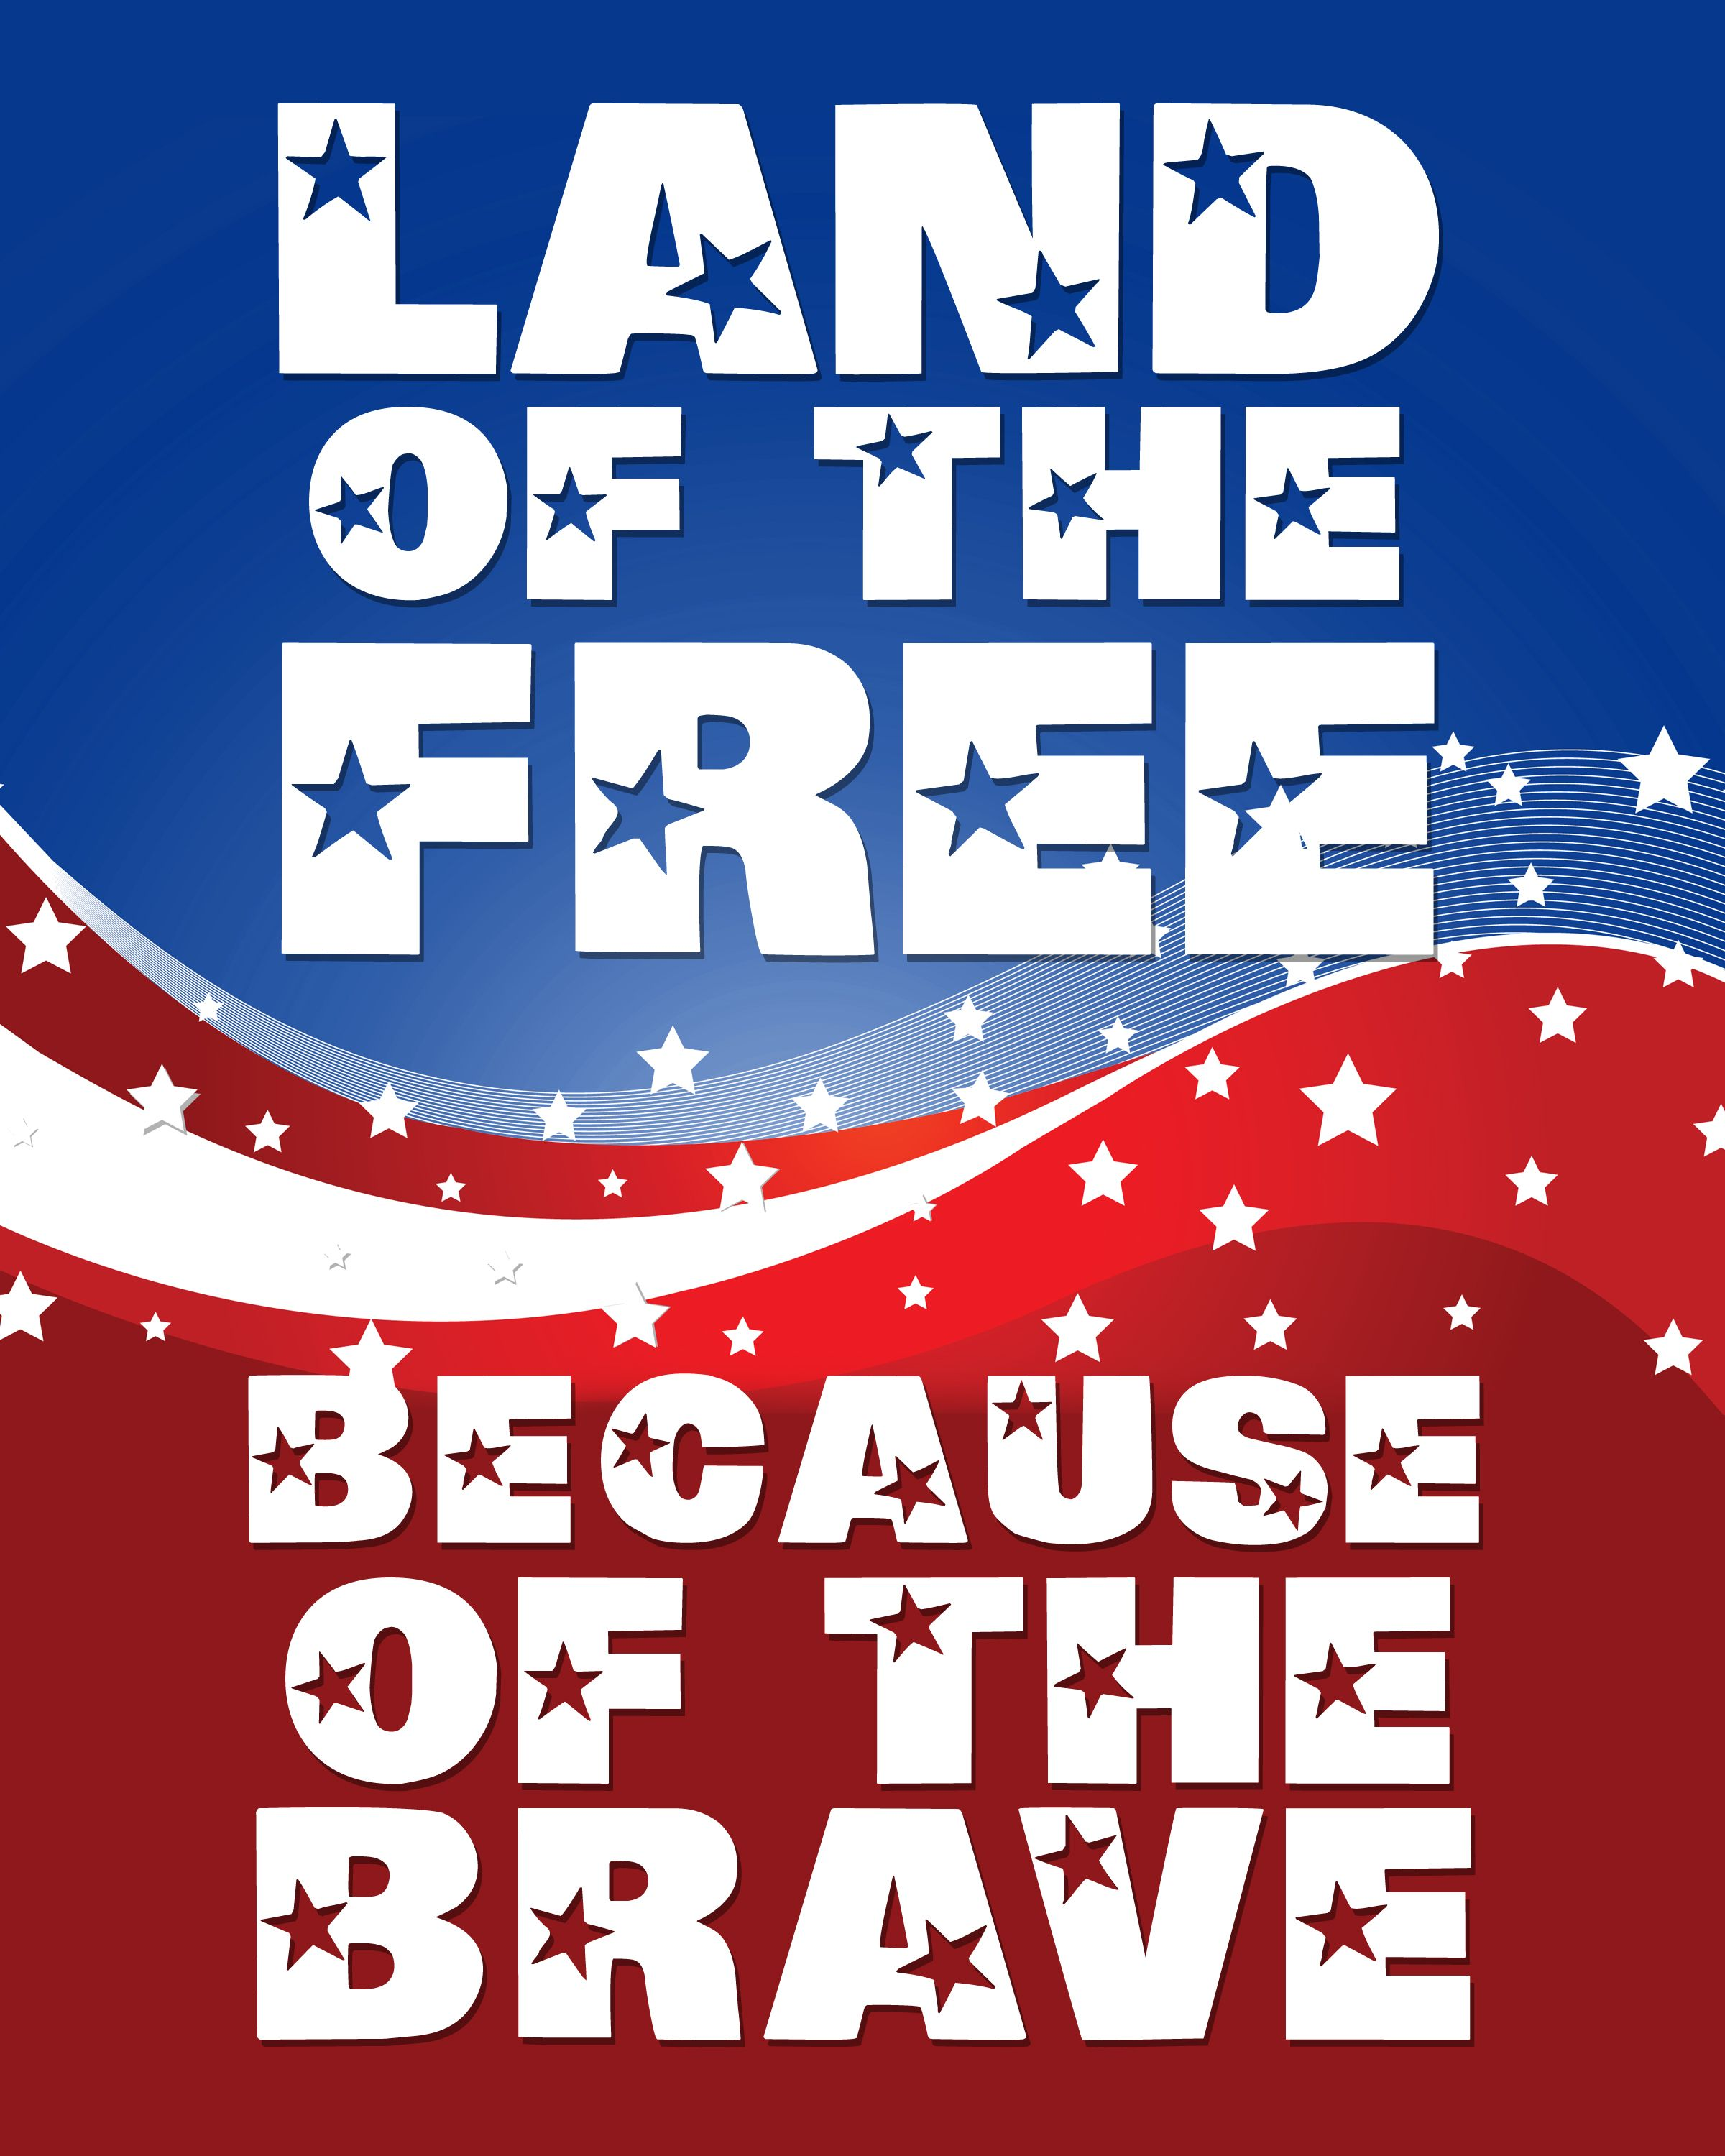 Memorial day poems veterans poems prayers - Land Of The Free Because Of The Brave Happy Memorial Day Memorialday